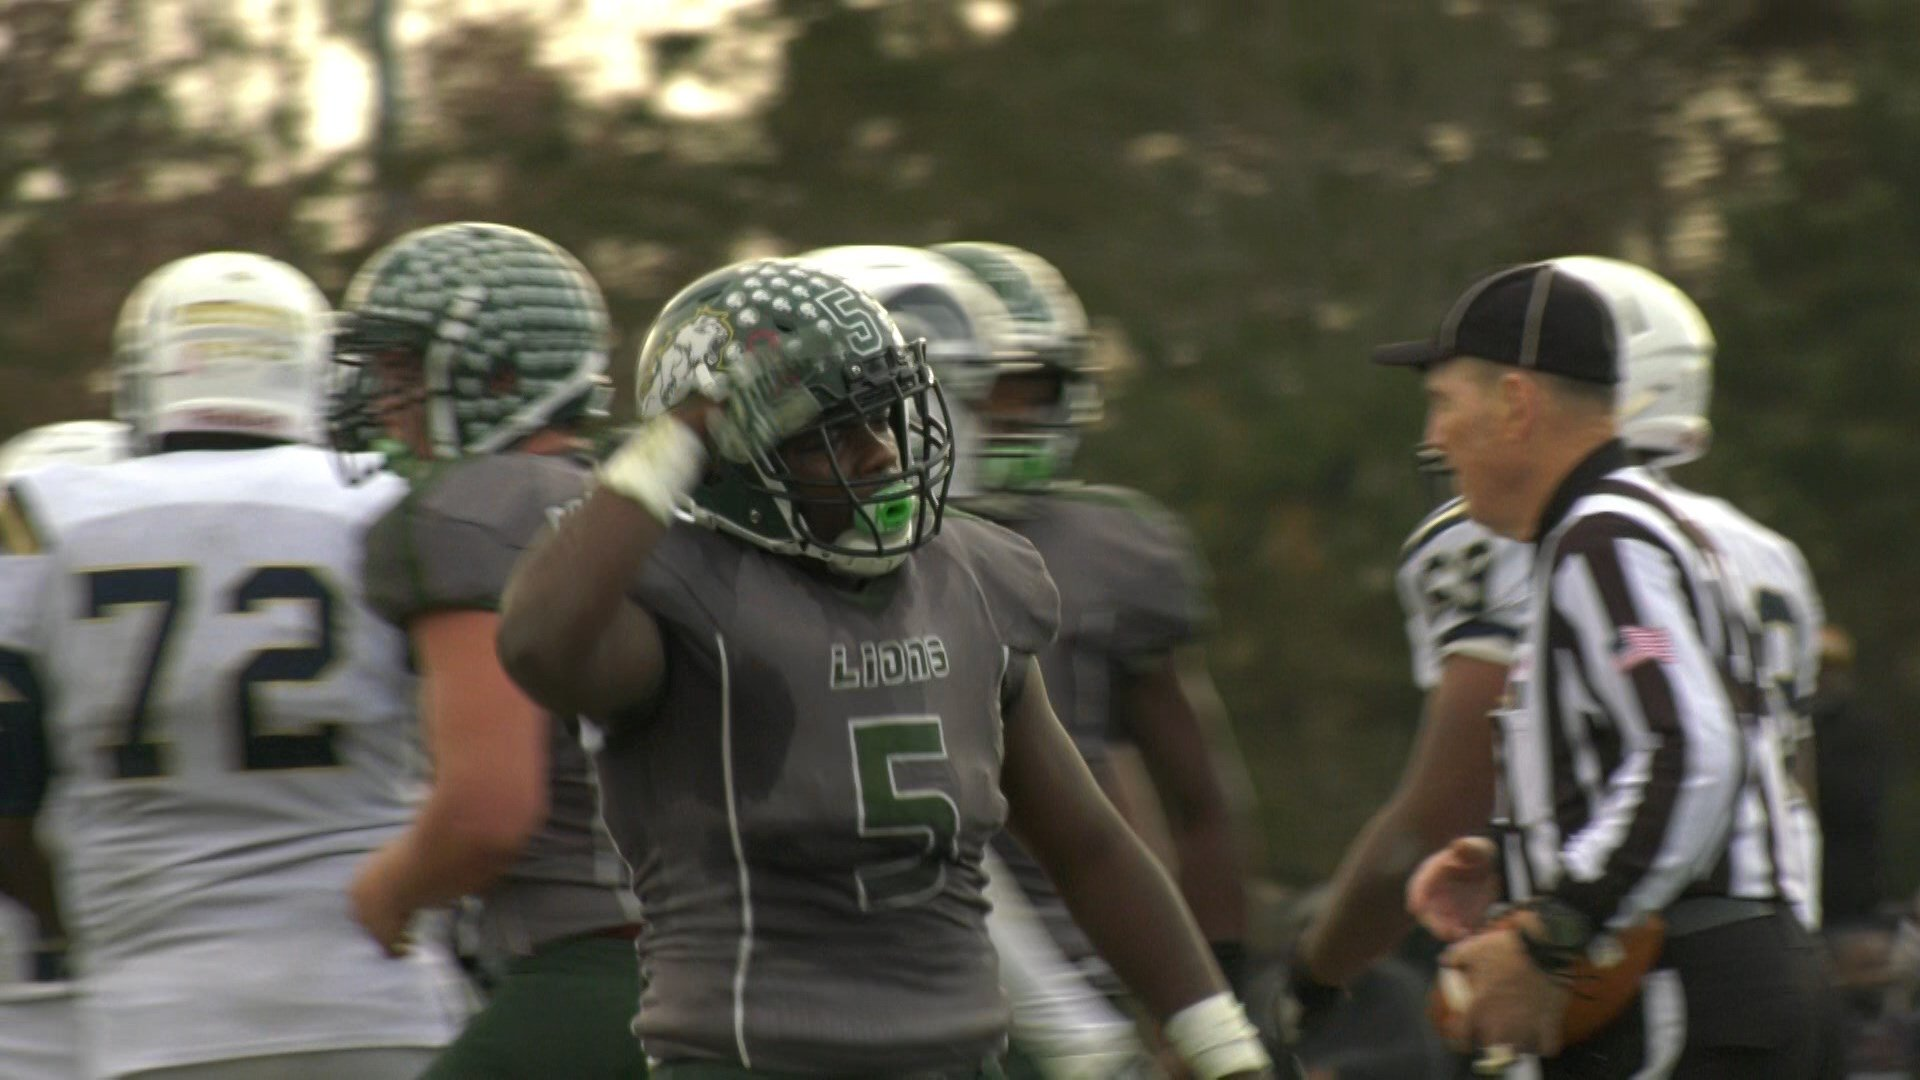 Raquan Jones scored a touchdown to give Louisa County a 17-0 half time lead over Lafayette